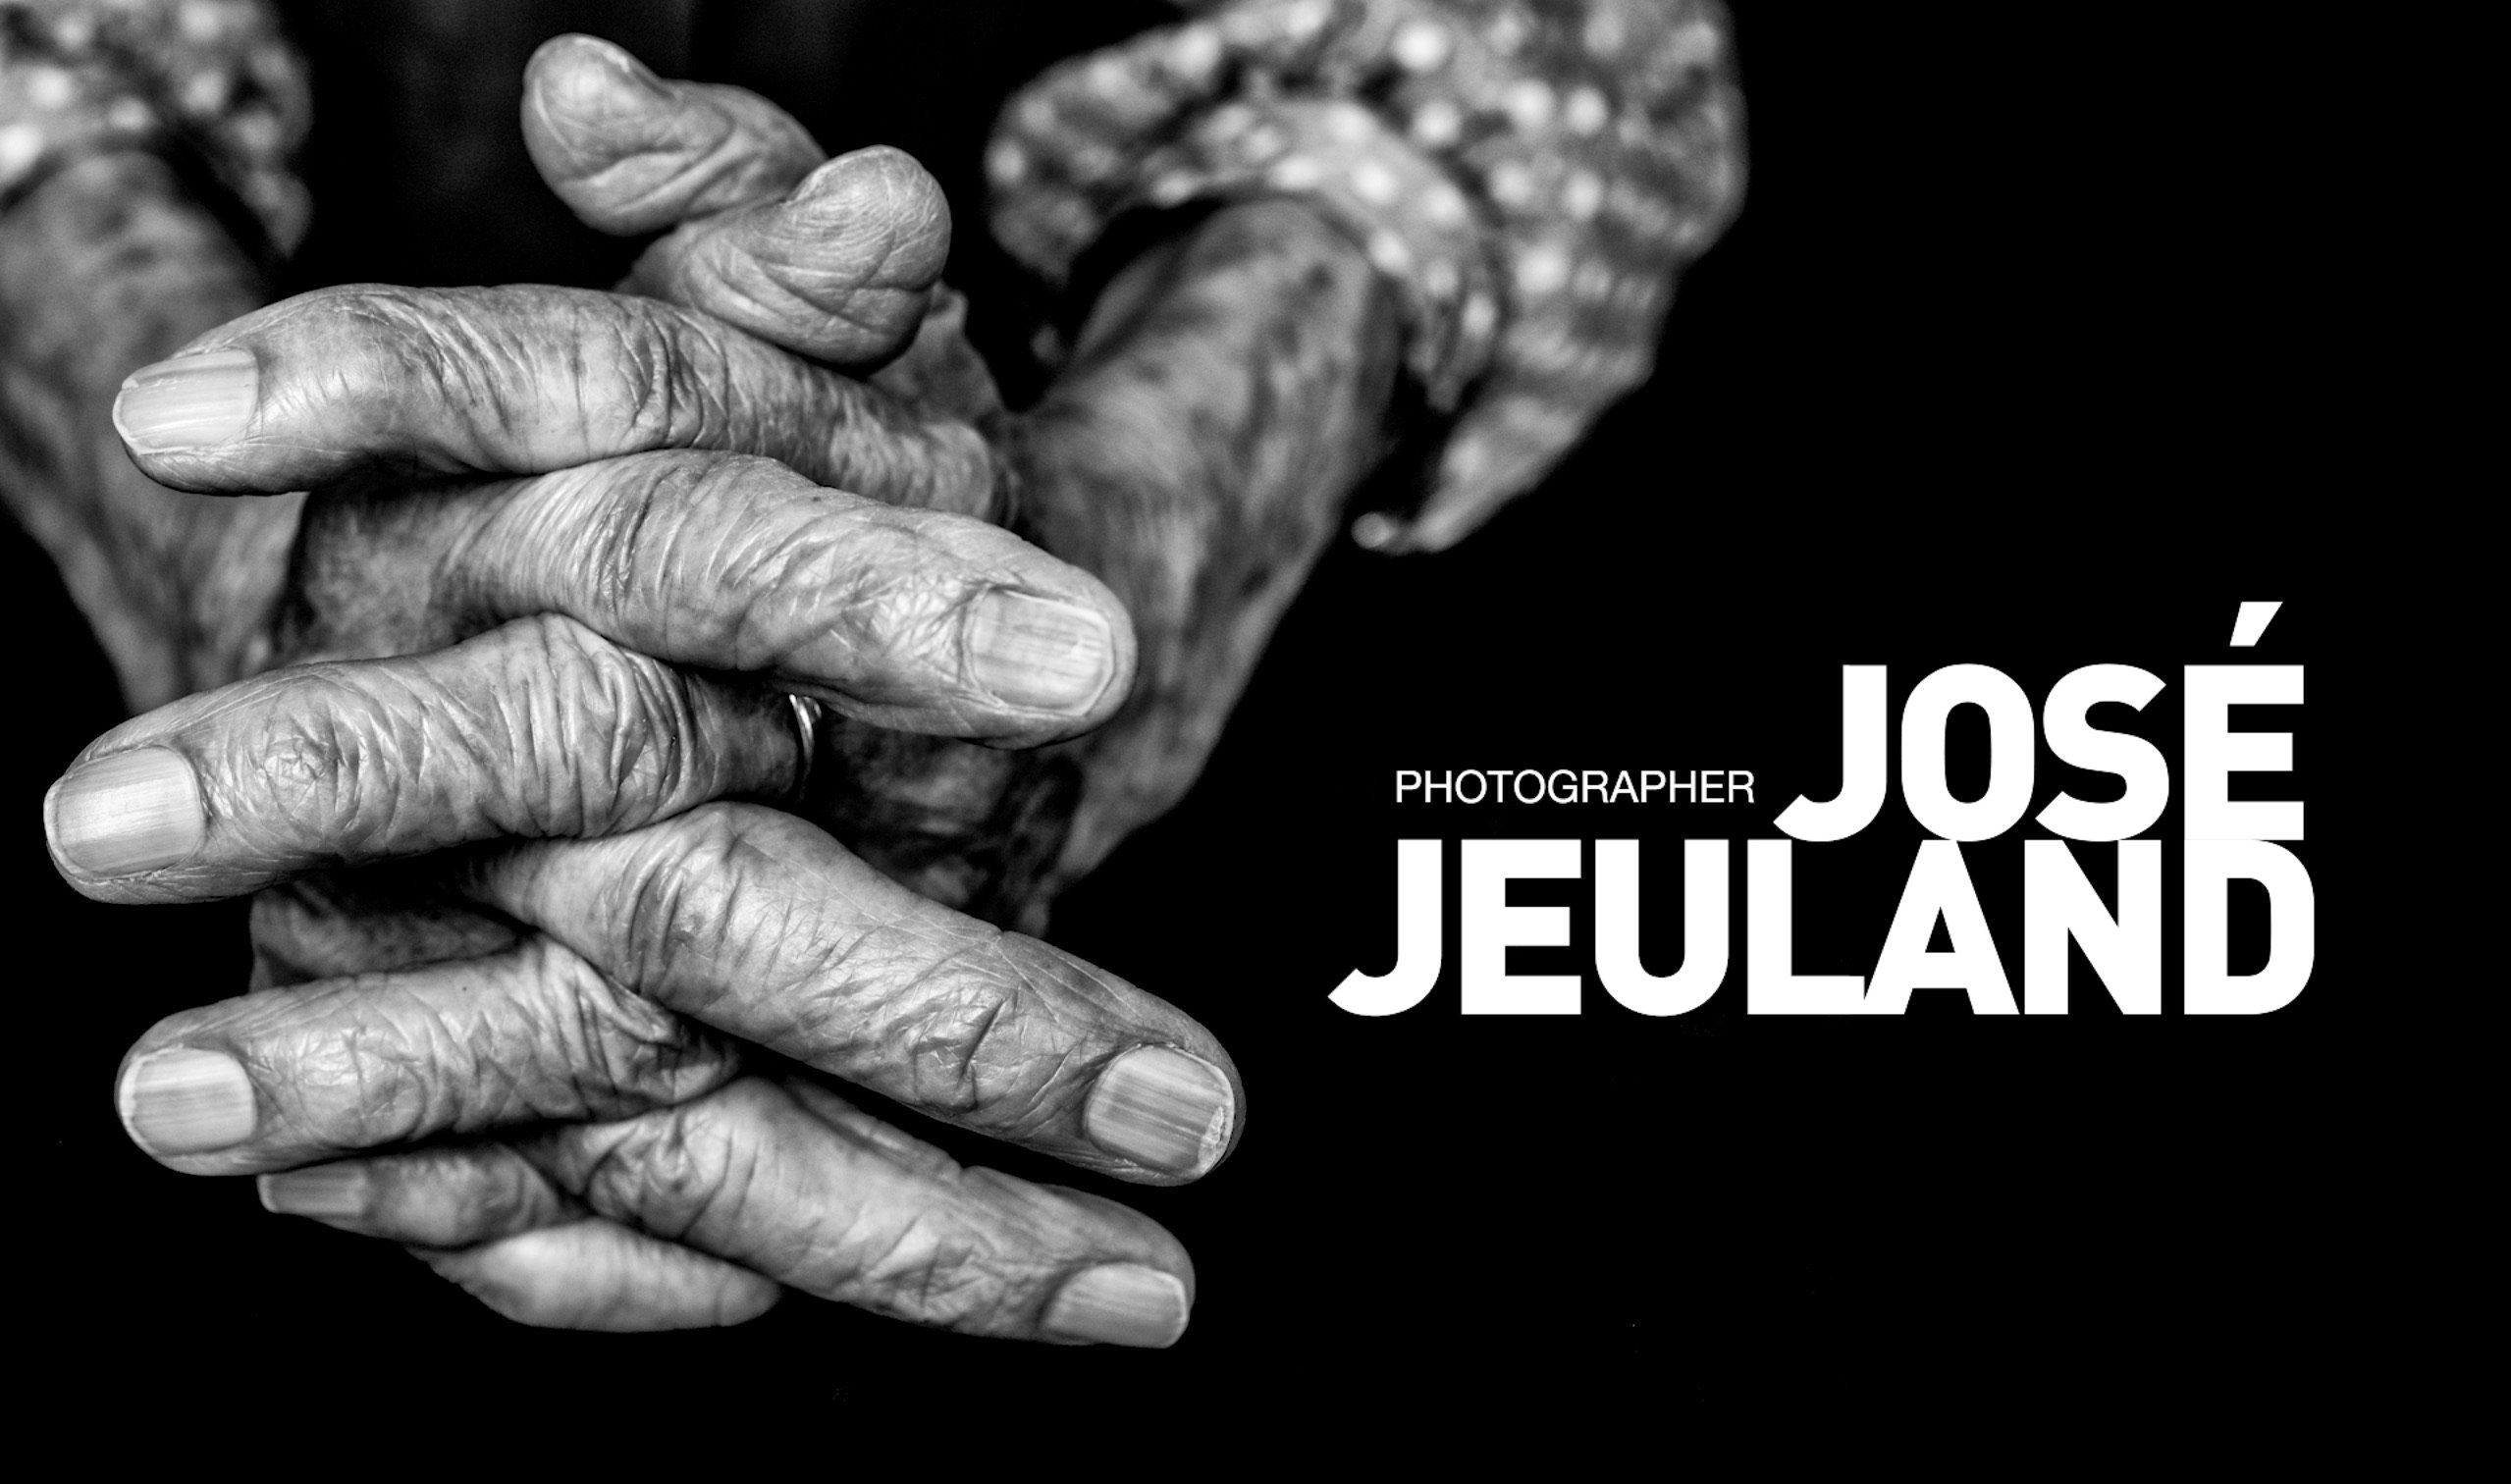 Jose Jeuland photographer - Photography portfolio - Documentary & editorial